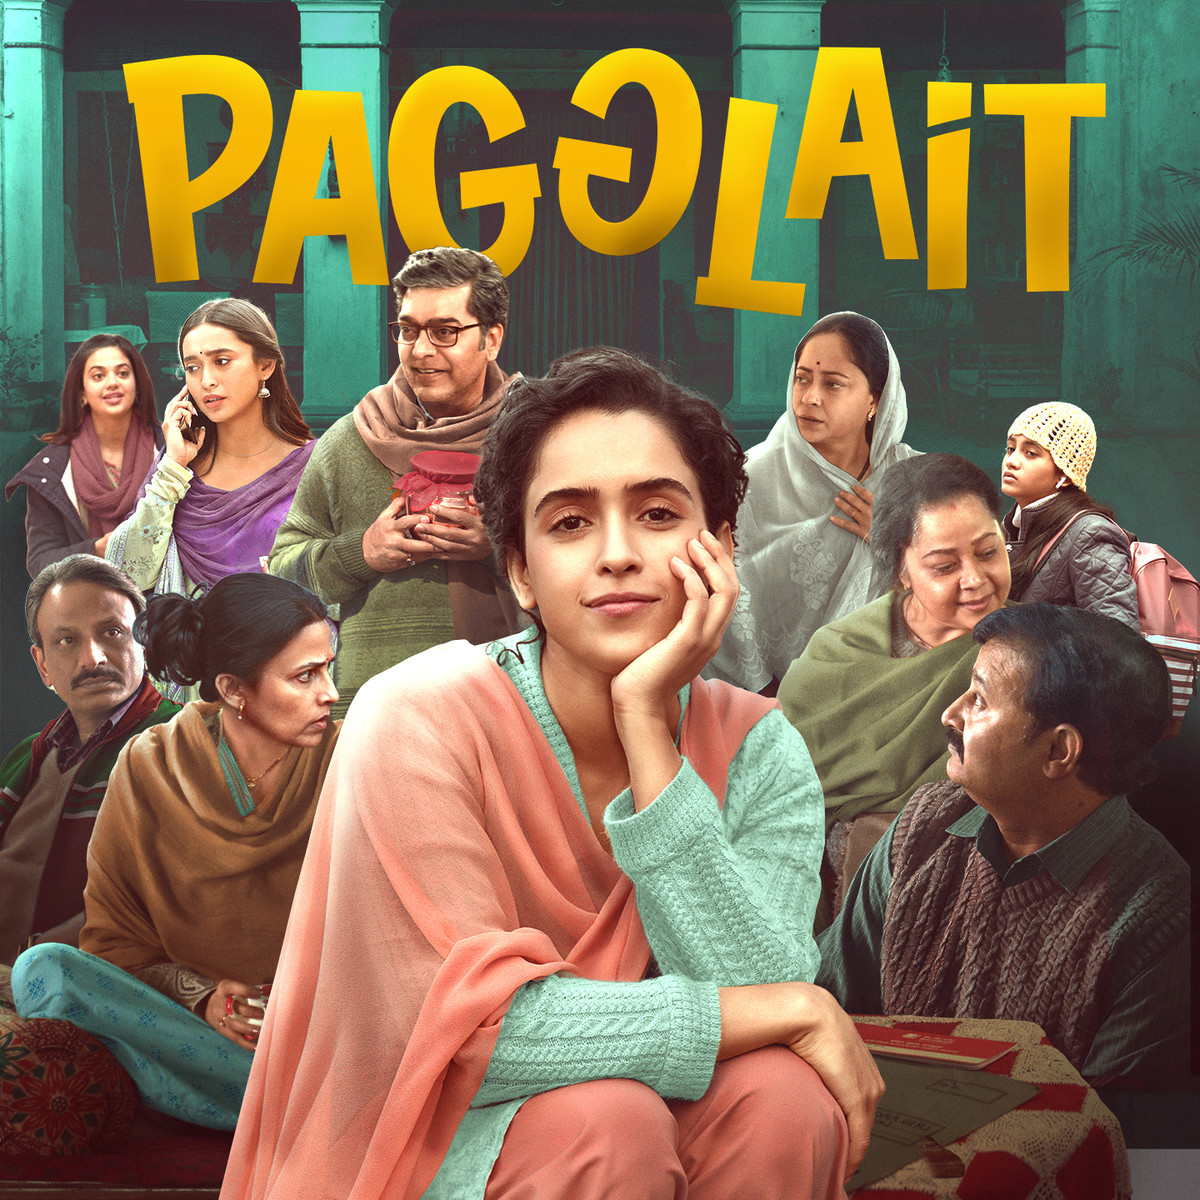 Pagglait (Original Motion Picture Soundtrack) Songs Download: Pagglait (Original Motion Picture Soundtrack) MP3 Songs Online Free on Gaana.com